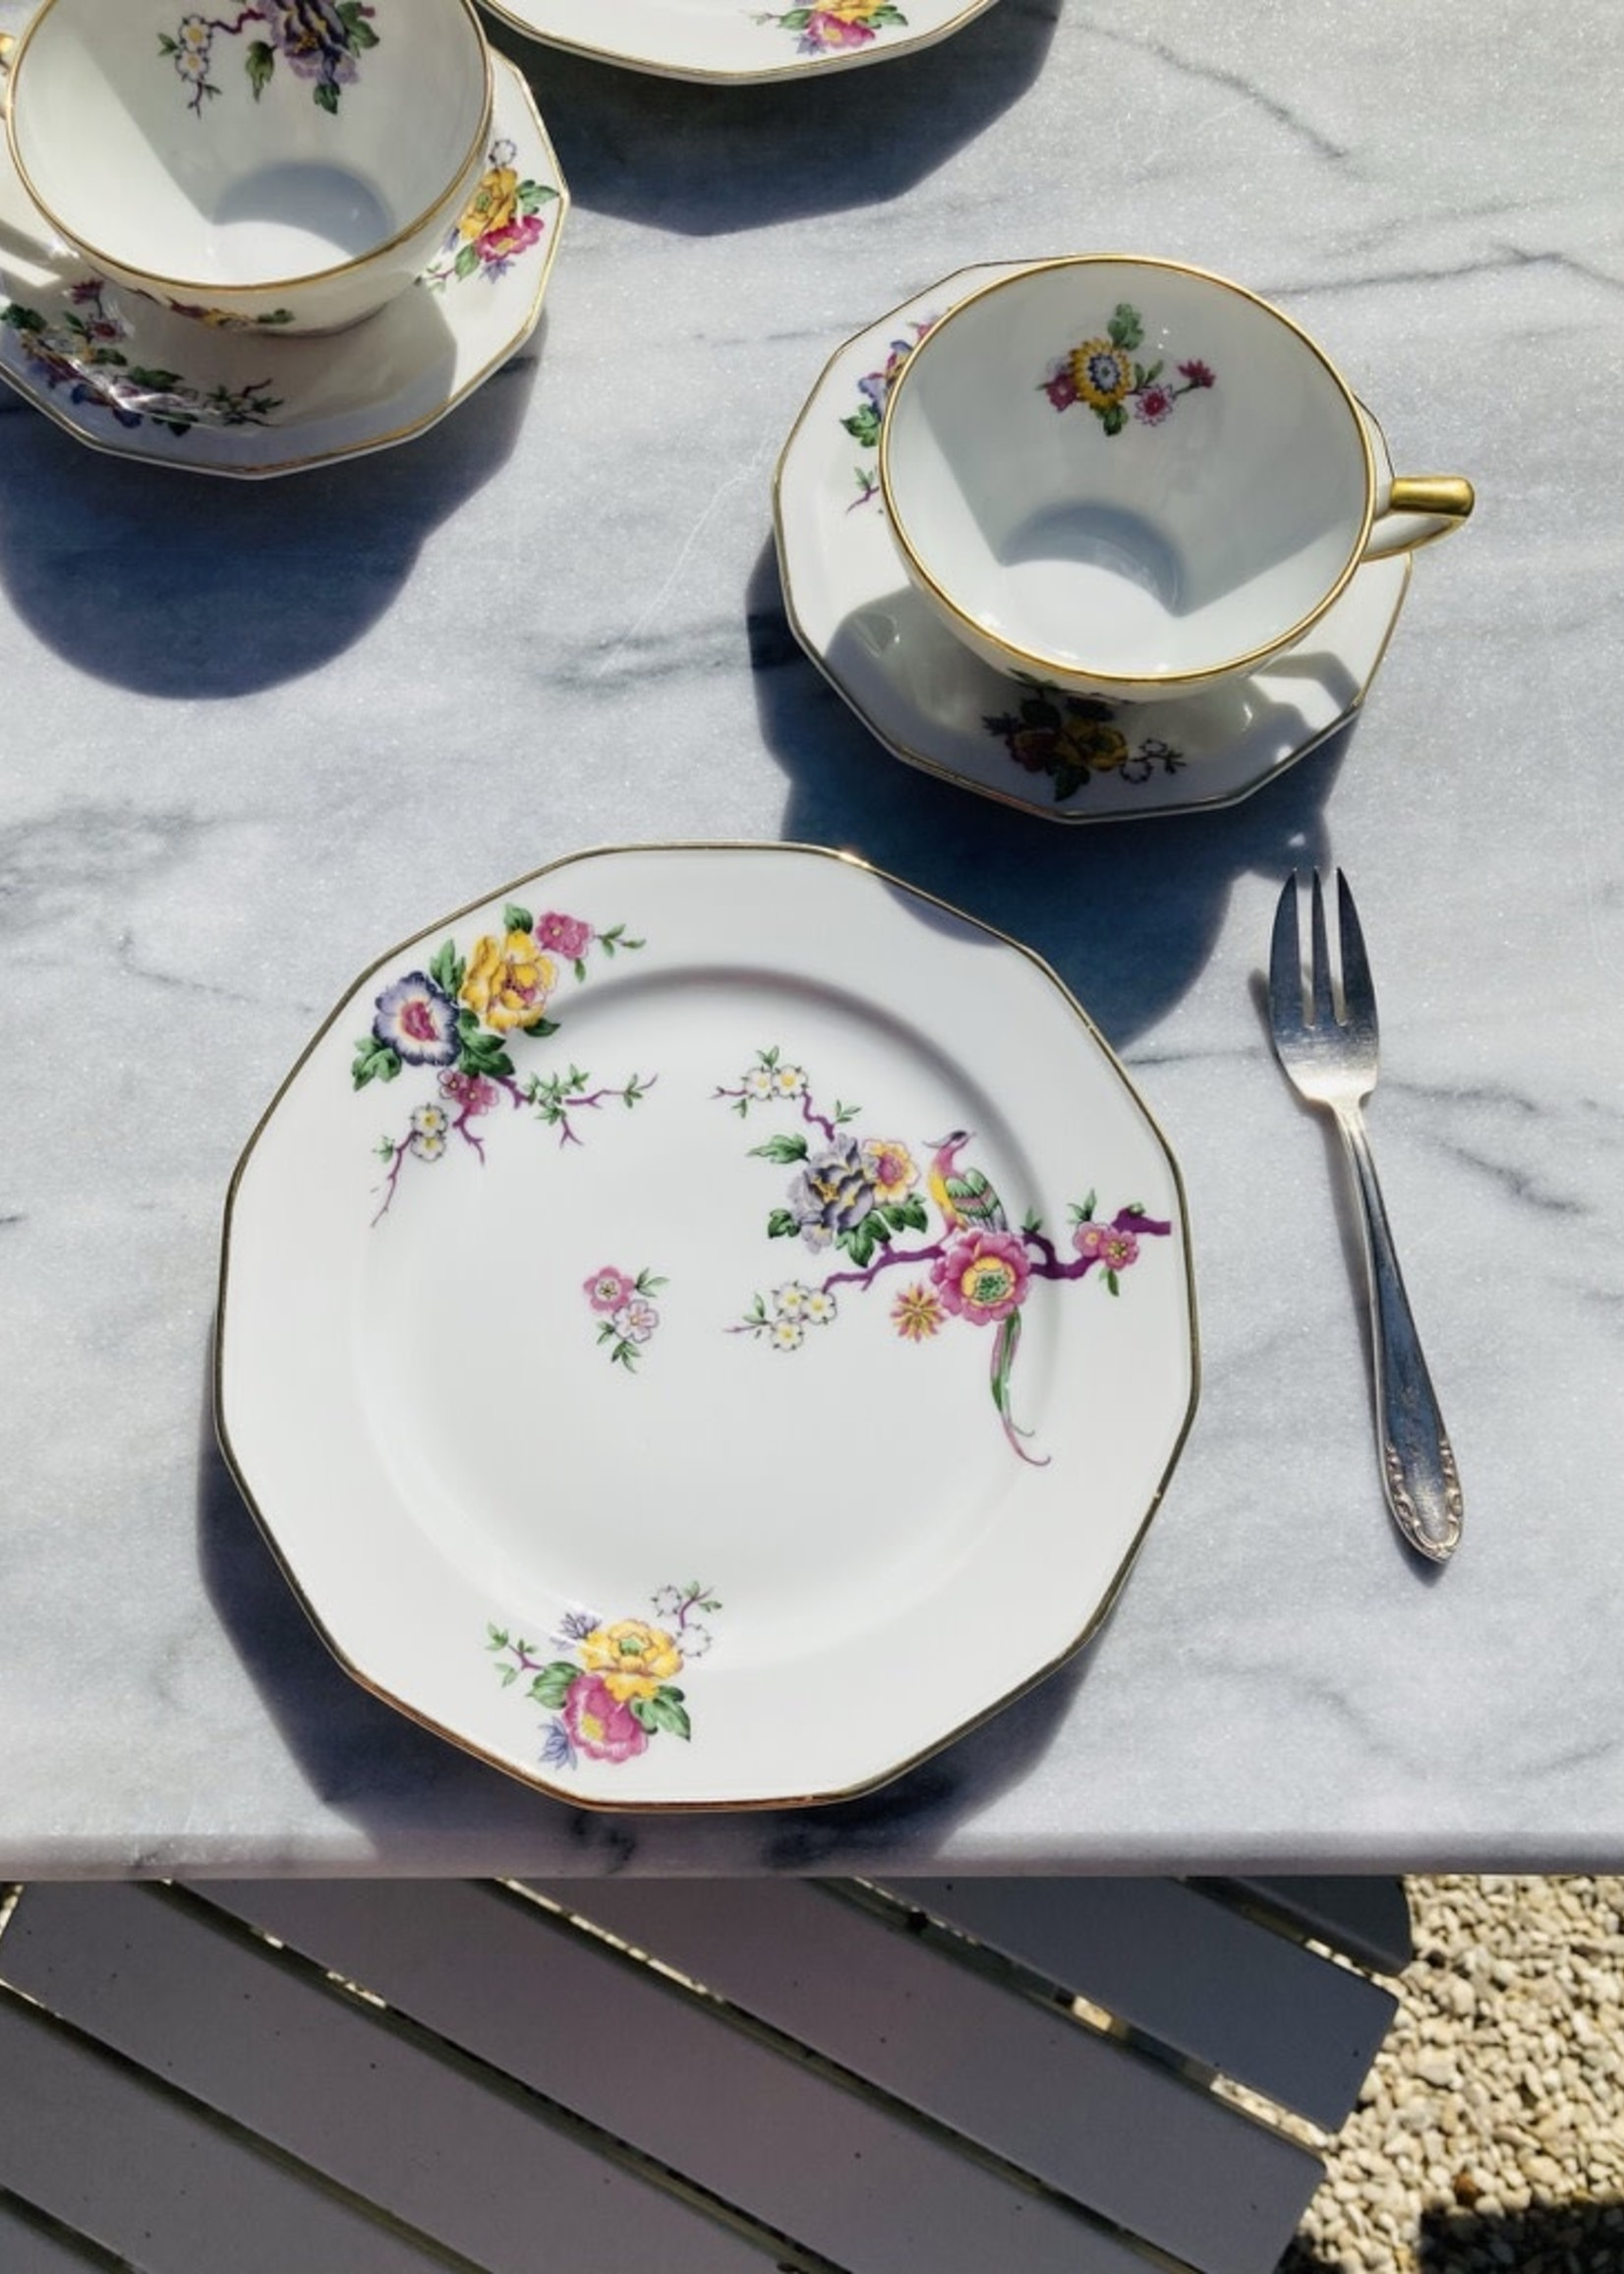 Small plates or Dessert plates from Cerabel Gand